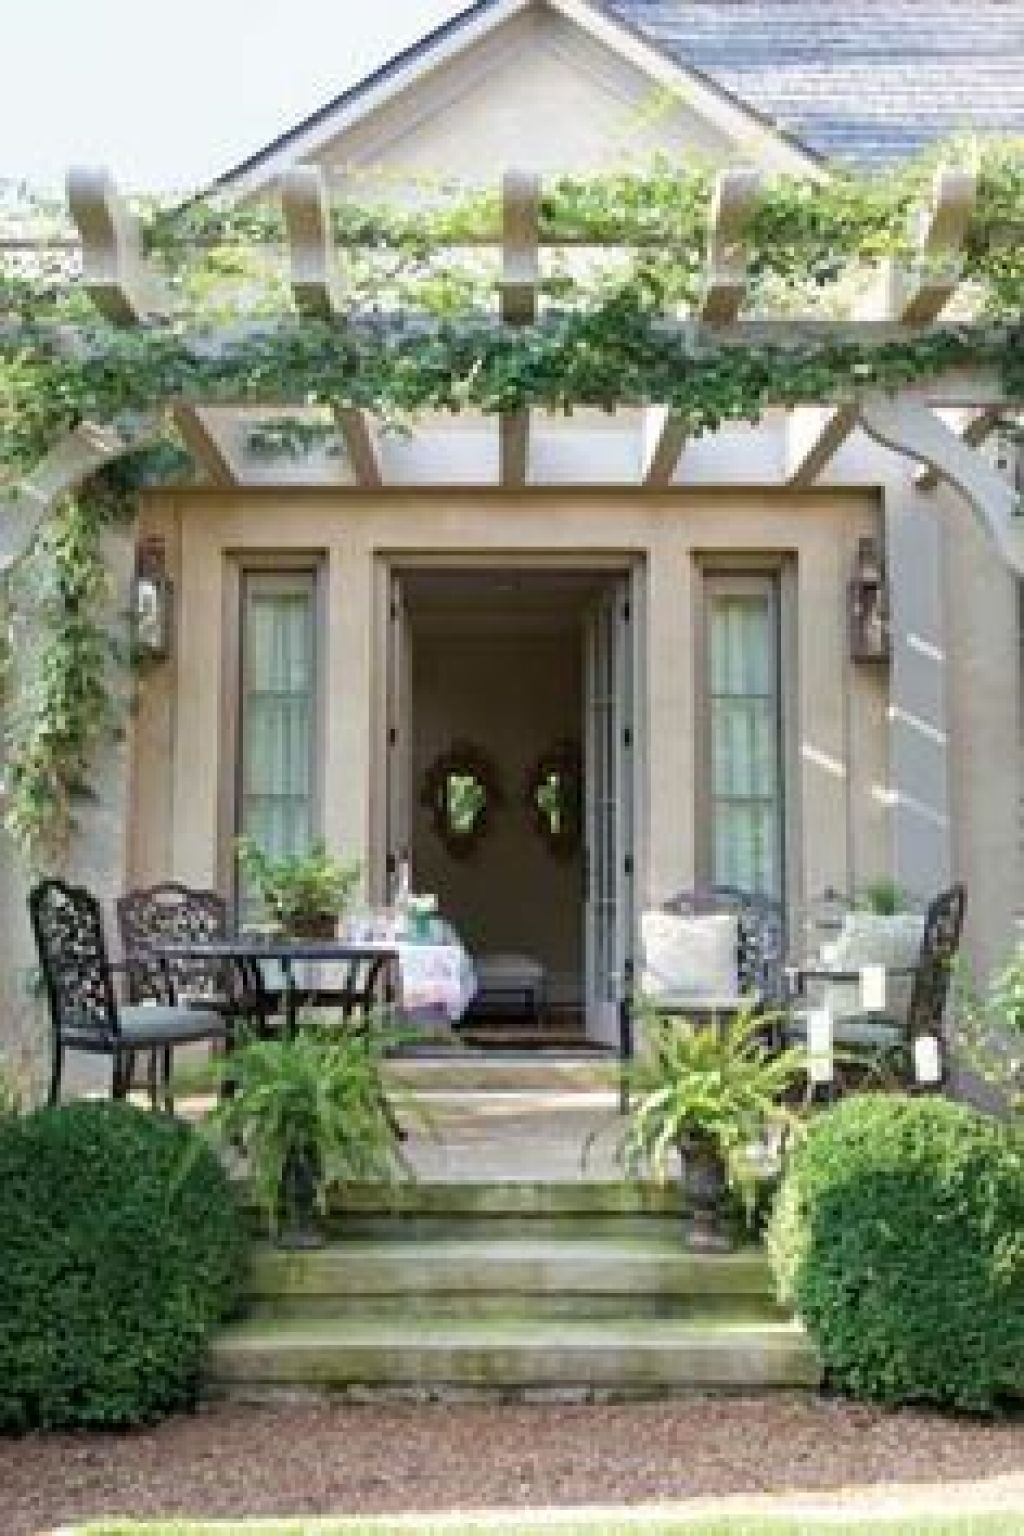 1000 ideas about front porch pergola on pinterest pergolas for Patio doors for front of house